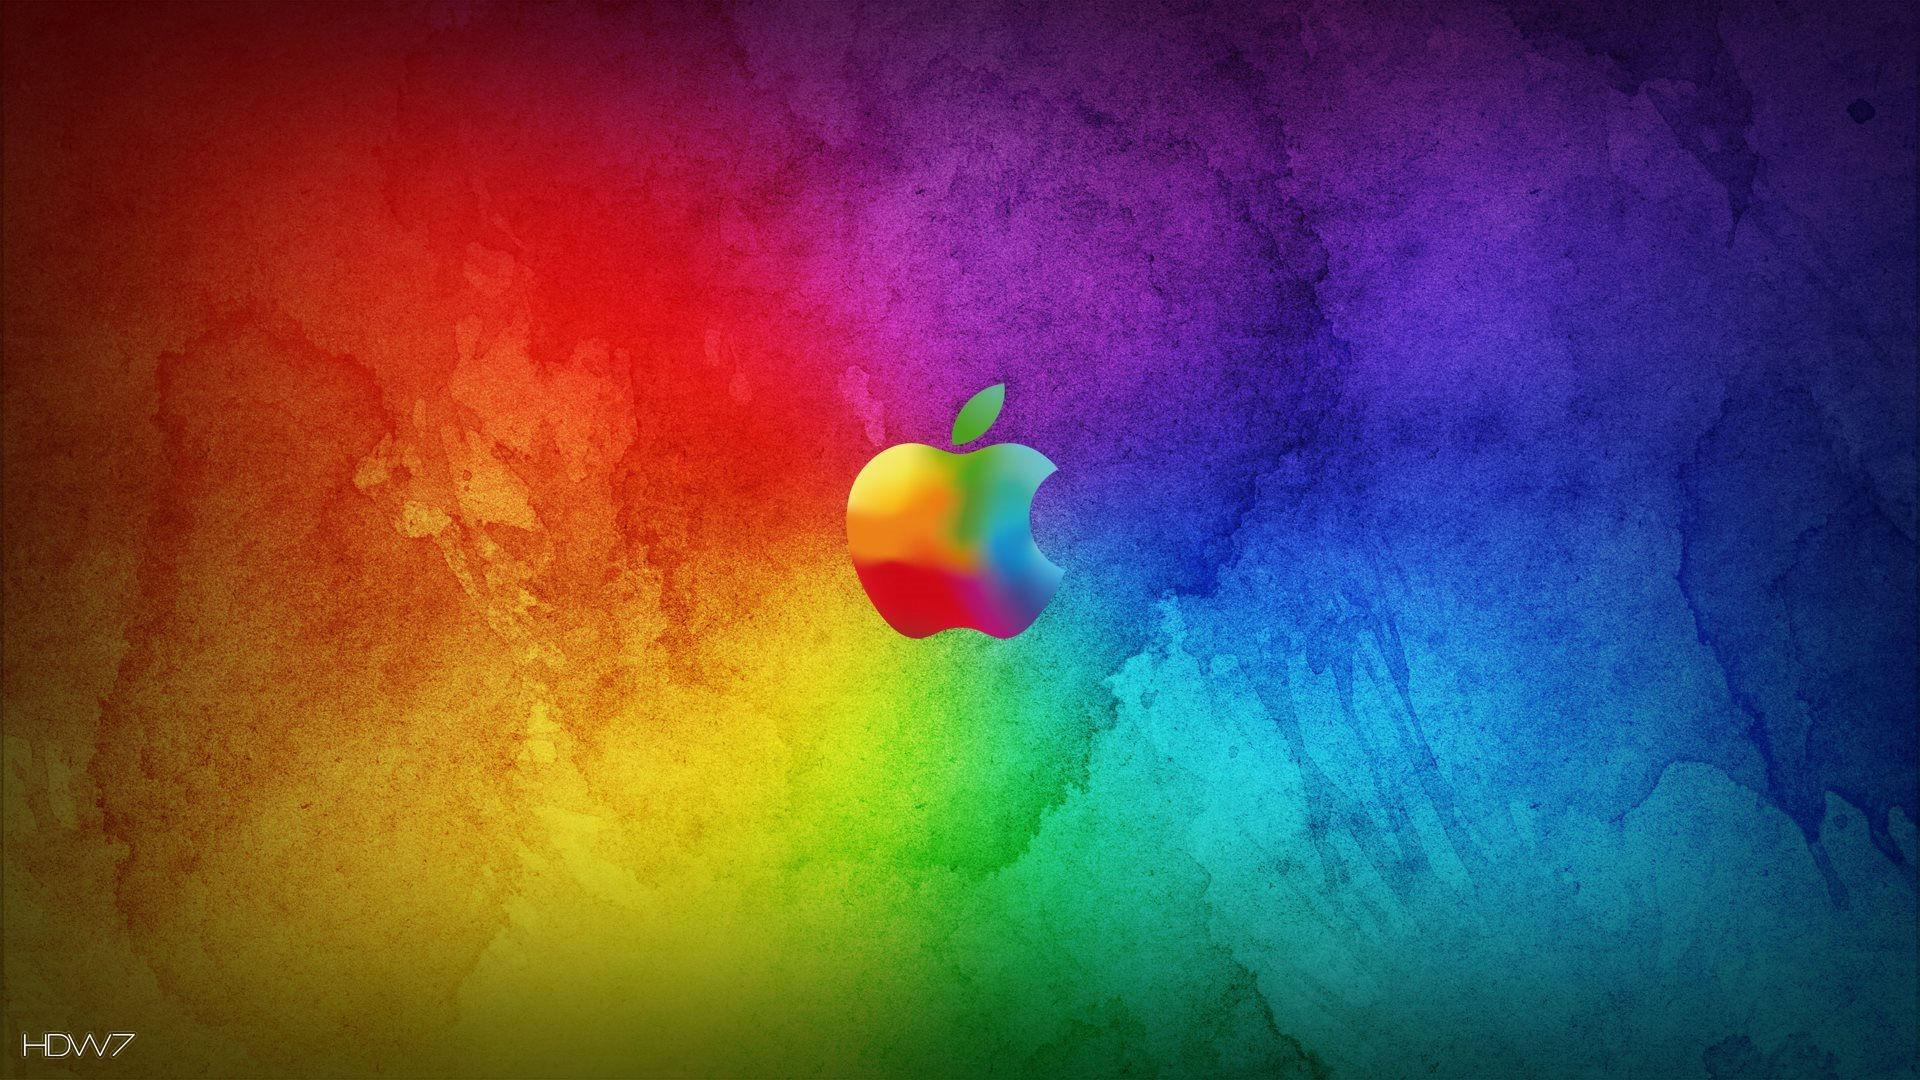 Apple-Red-And-Black-Desktop-Green-Rainbow-Black-And-1920%C3%971080-Apple-Desktop-wallpaper-wpc9002314